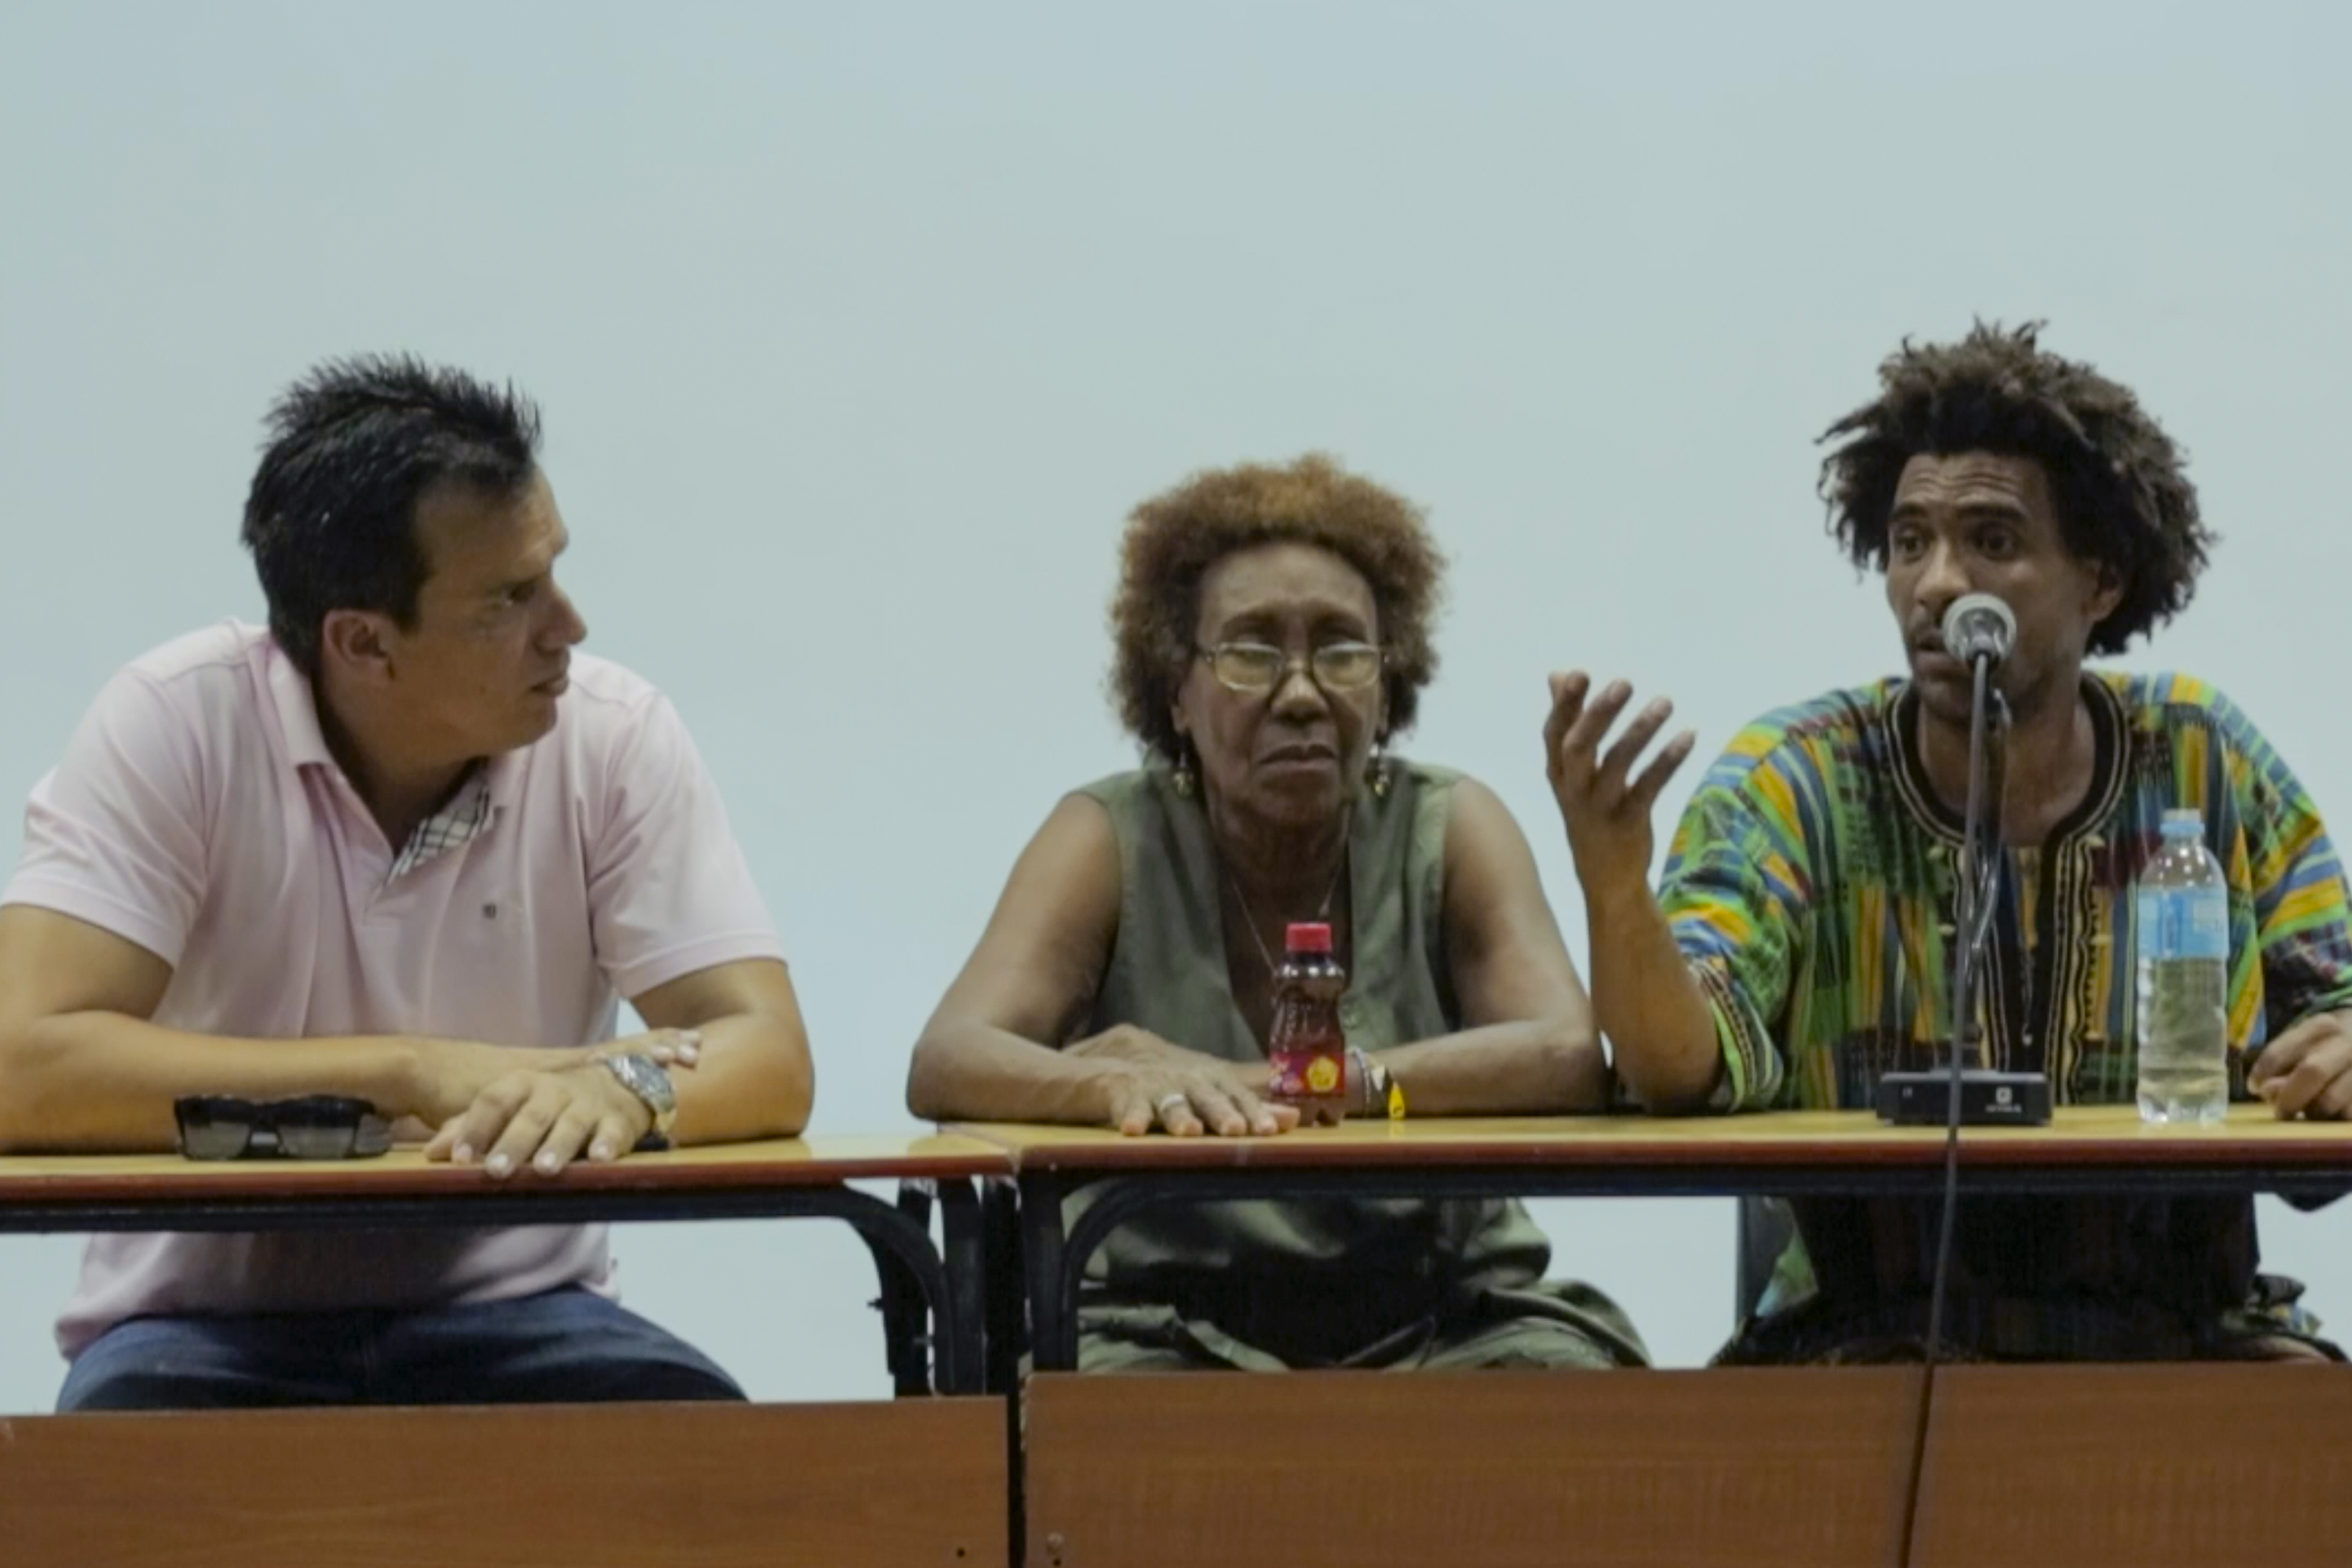 Cuban poets discuss spoken word's place in Cuba's rich poetic tradition at the University of Havana during Zonas Poeticas